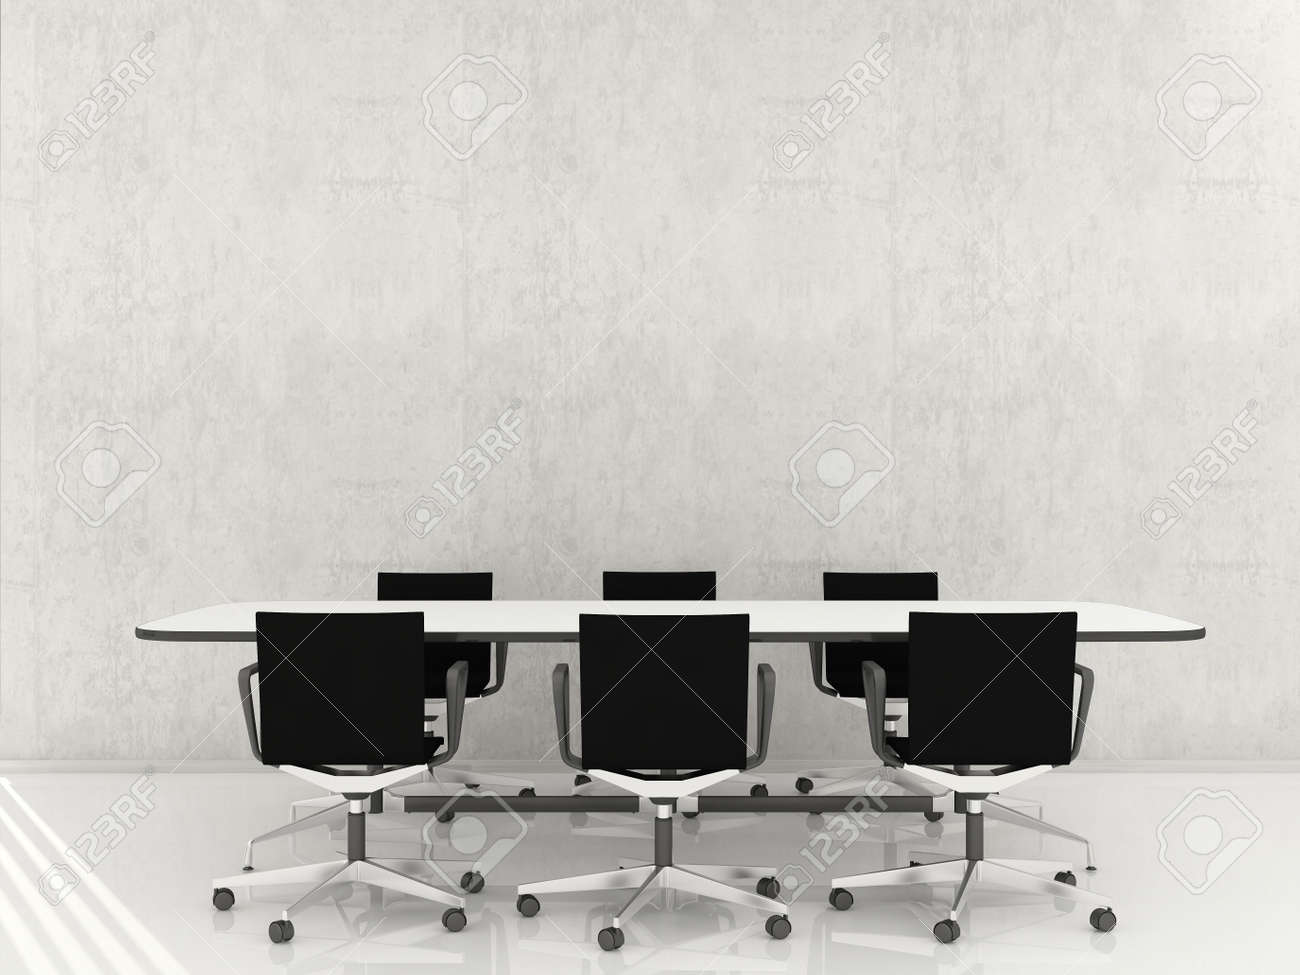 Many Chairs and table to face a blank wall - 5867545